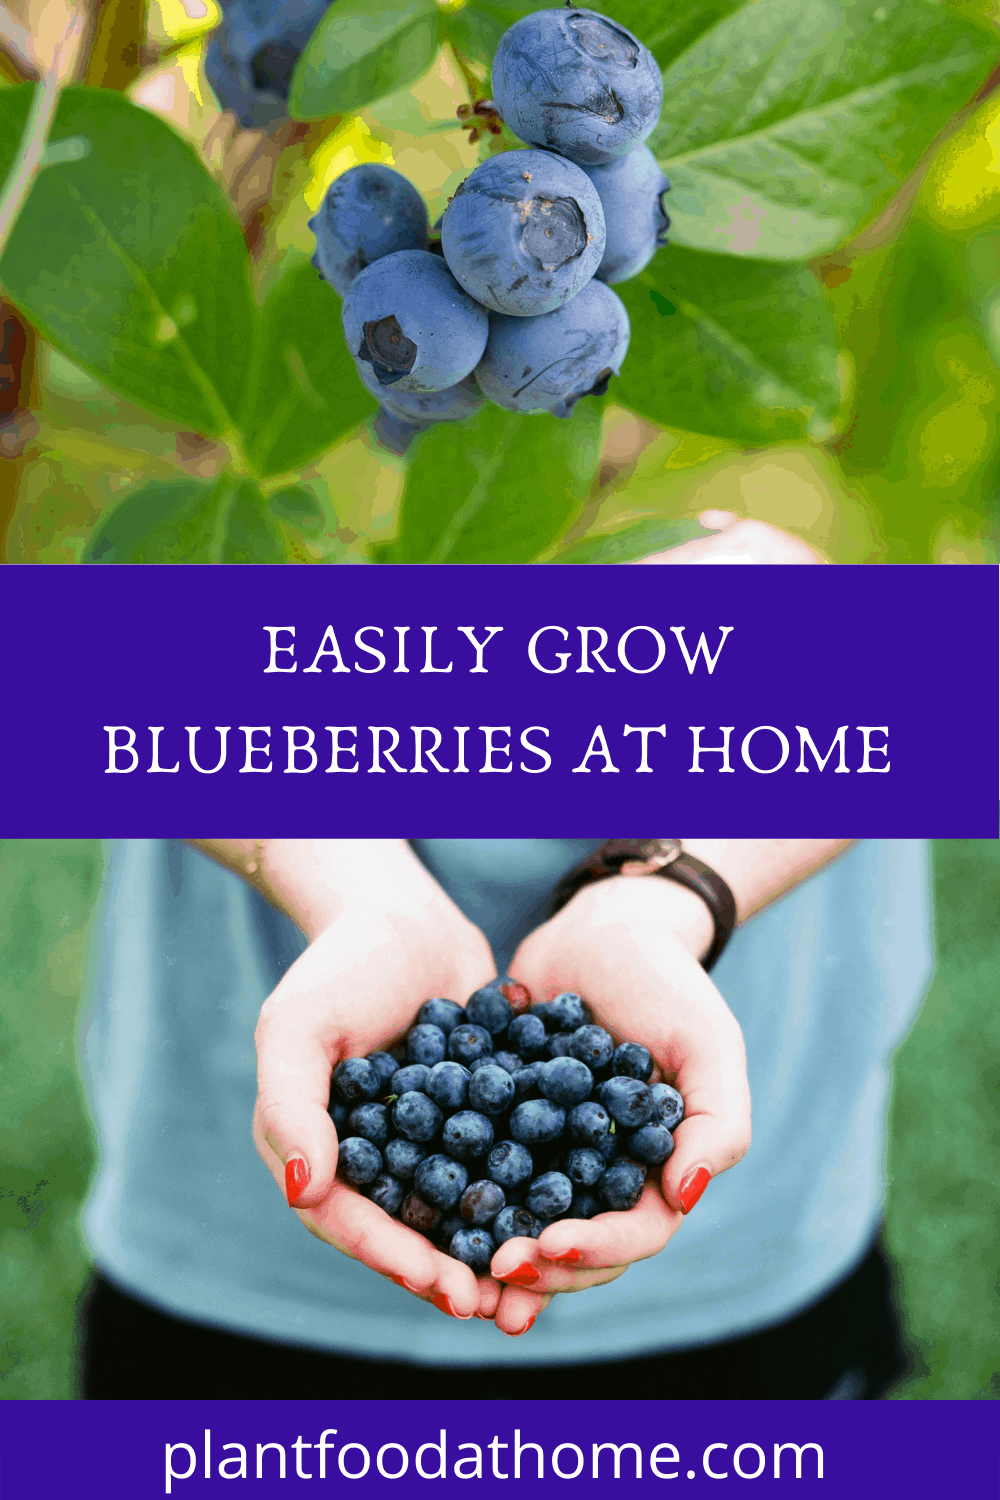 How To Easily Grow Blueberries